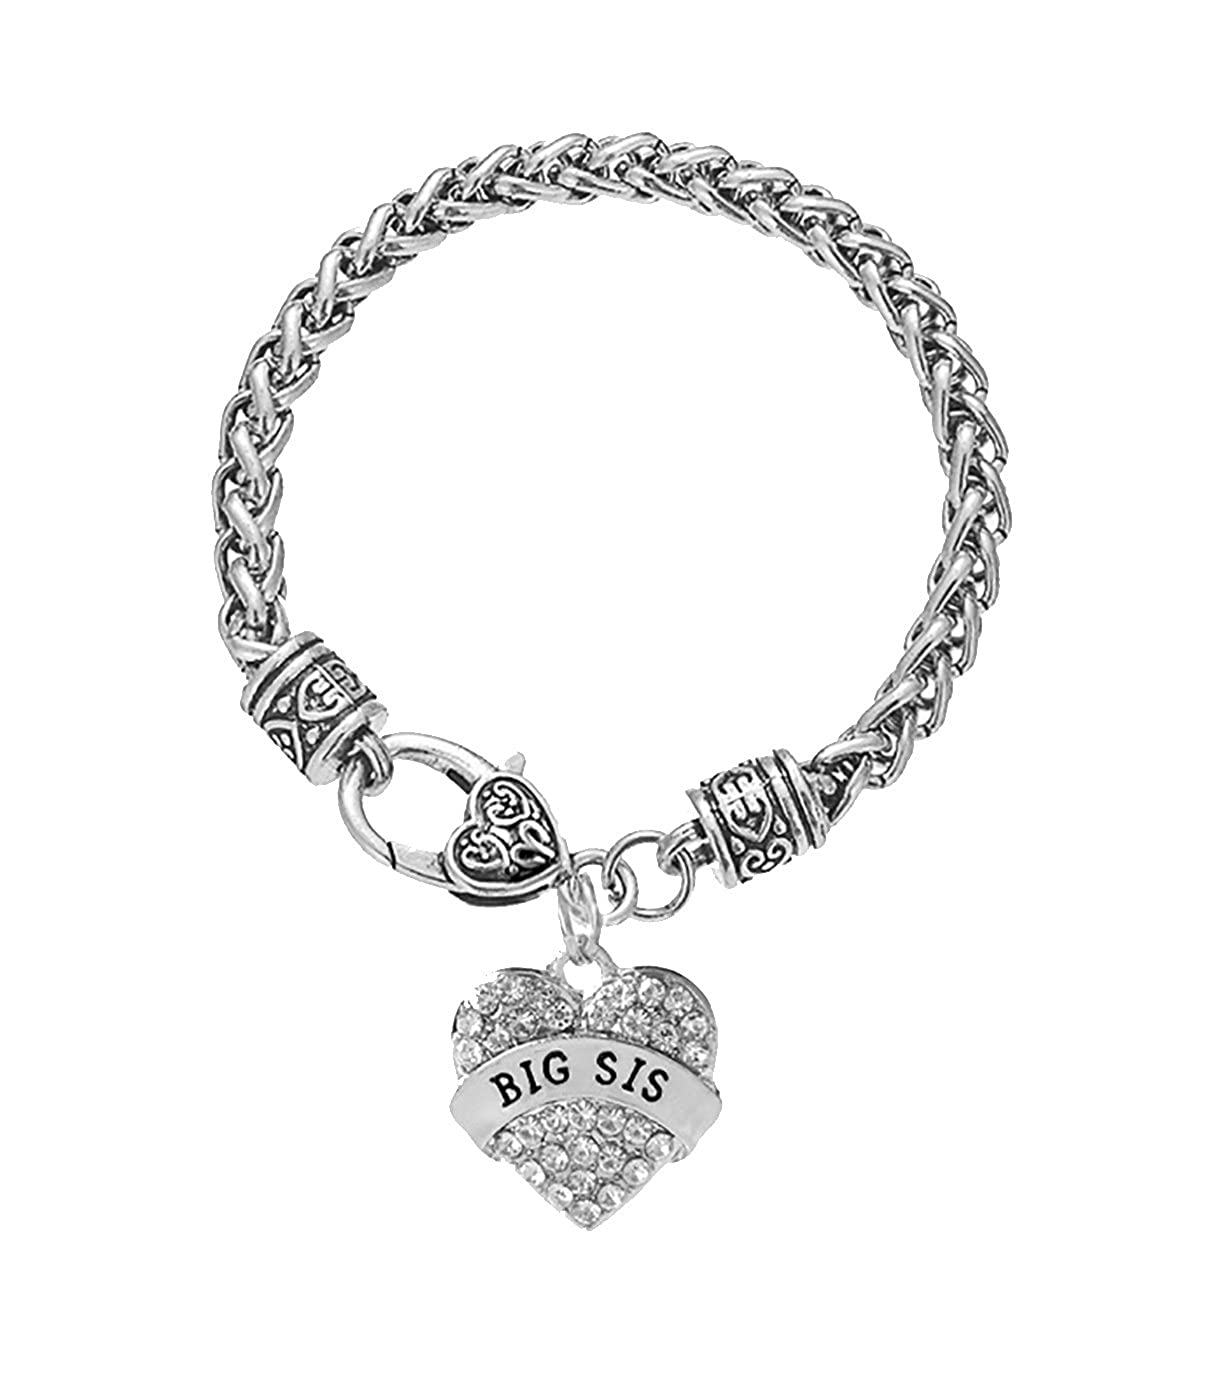 Eternal Classical Best Sister Jewelry Heart Shaped Bracelet Gifts For Sister Christmas Birthday Gifts.